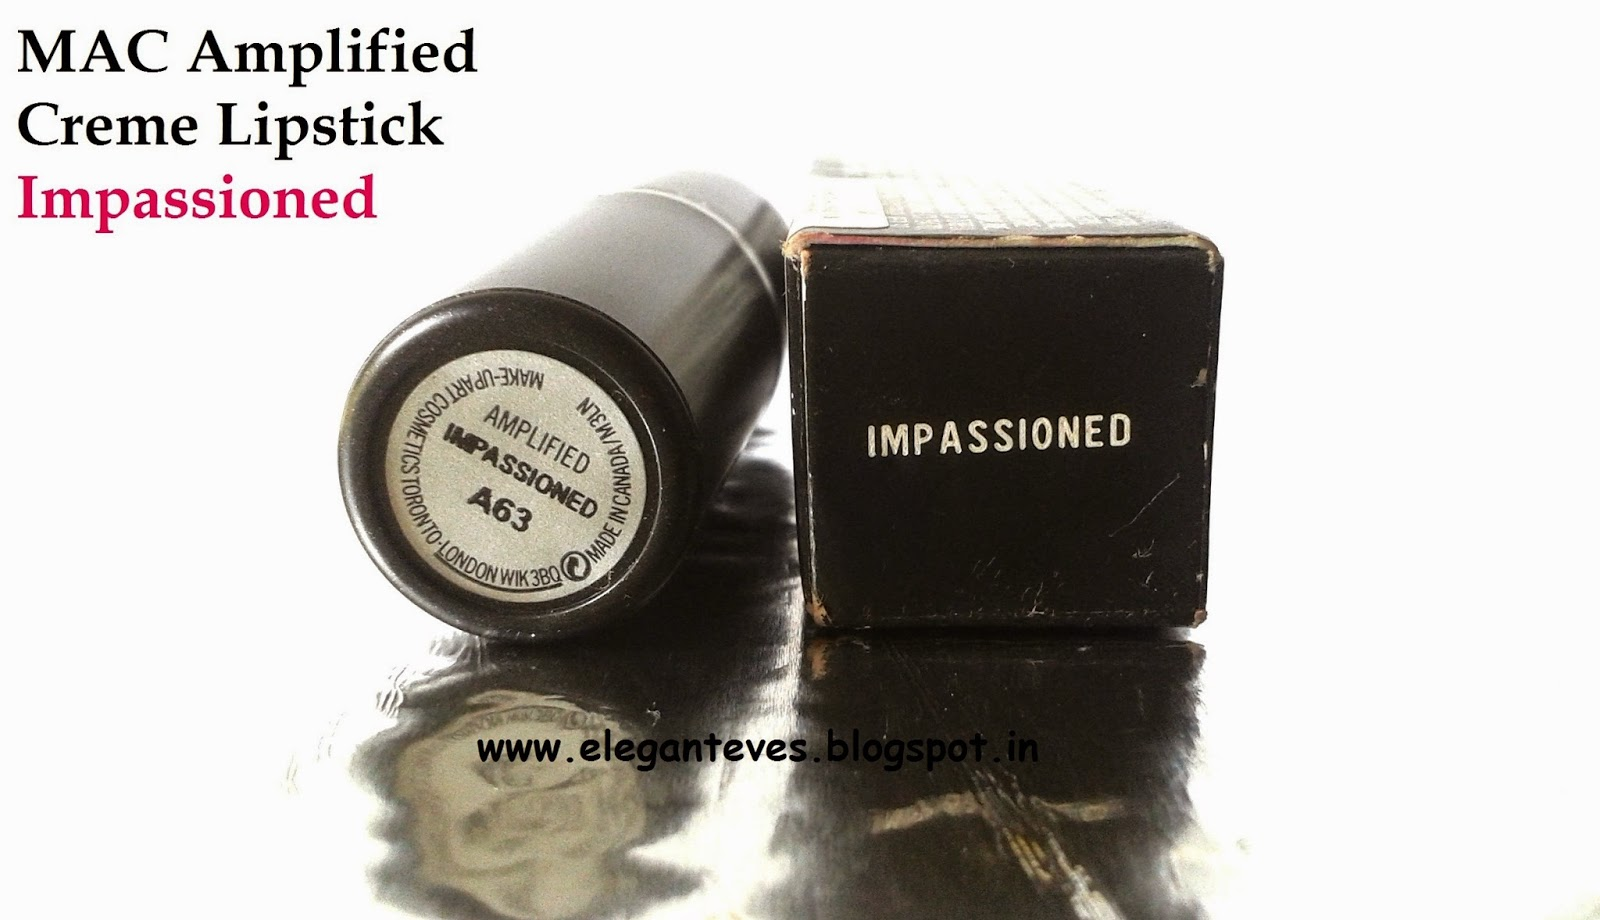 "REVIEW, SWATCHES, LOTD OF MAC AMPLIFIED CREME LIPSTICK ""IMPASSIONED"""